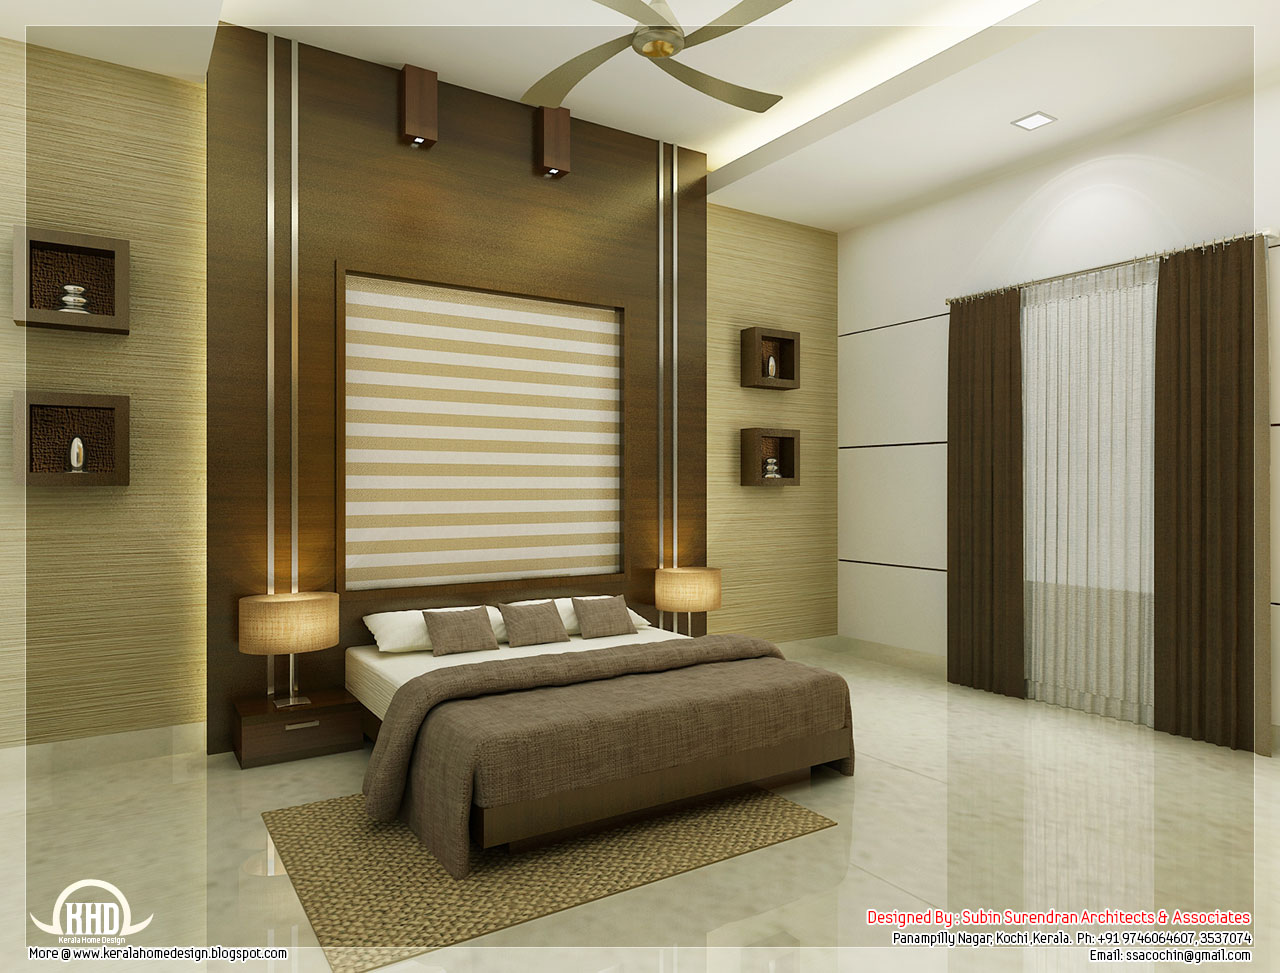 Magnificent Beautiful Interior Design Bedrooms 1280 x 973 · 226 kB · jpeg